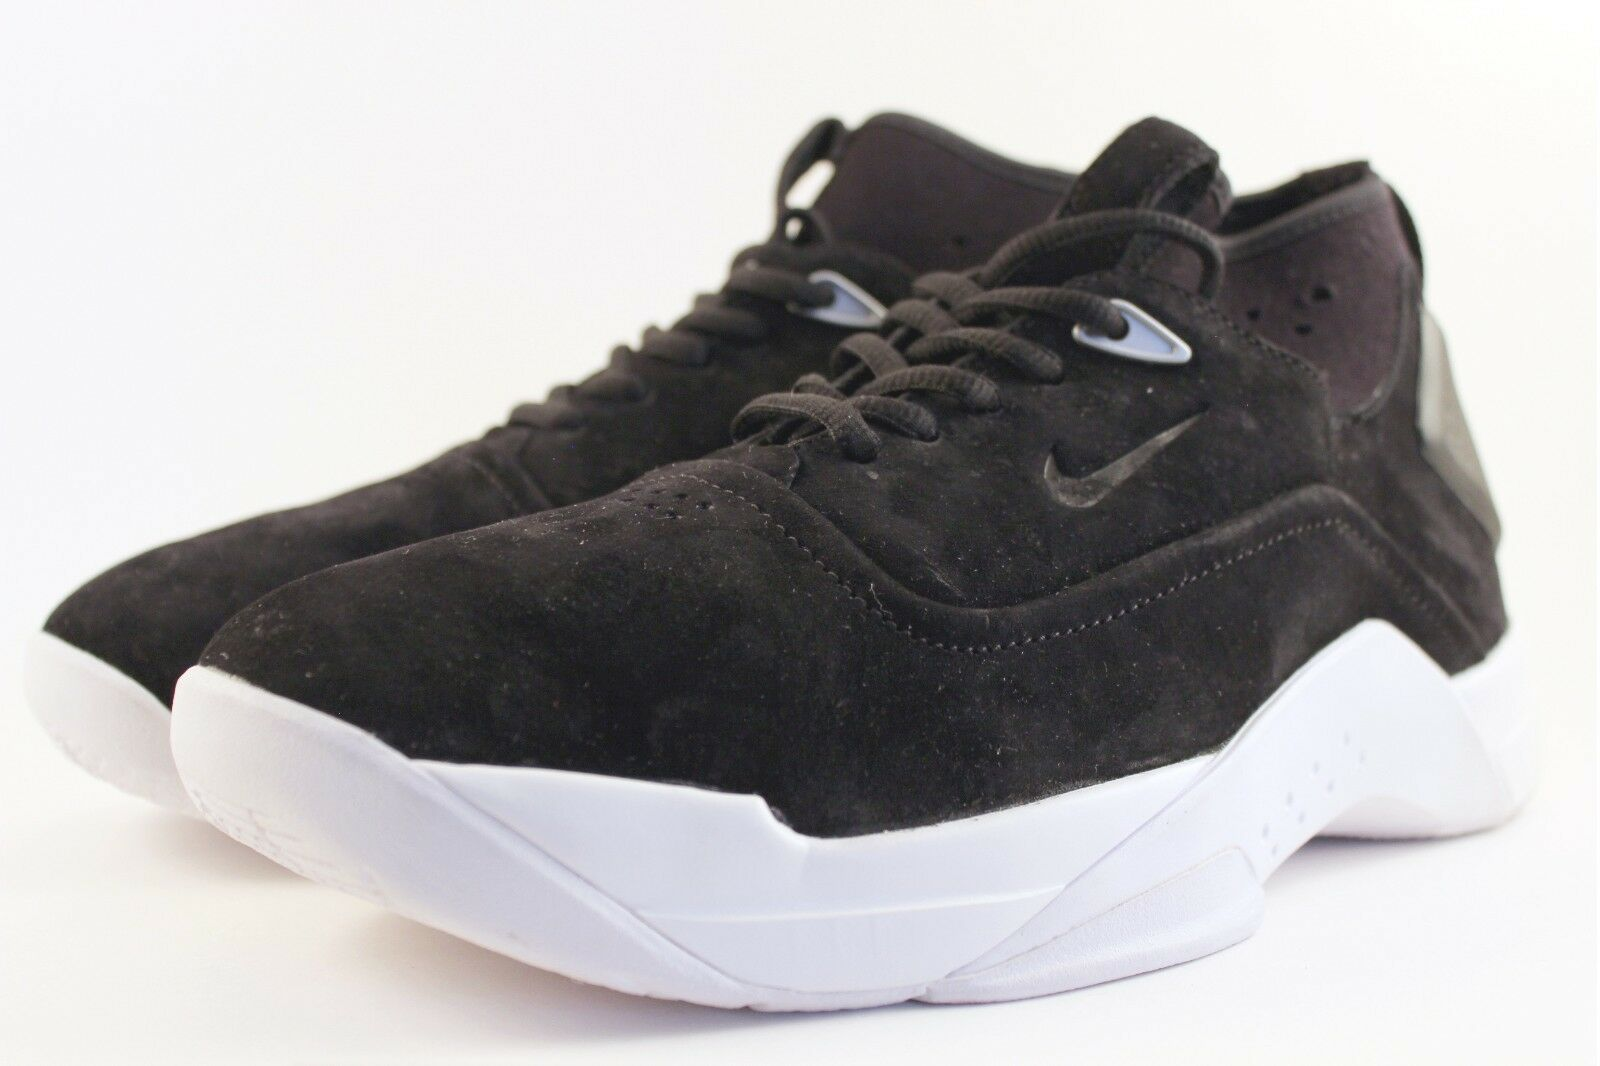 New Nike Mens Hyperdunk Low Lux Black Basketball Shoes 864022-001 Size 9